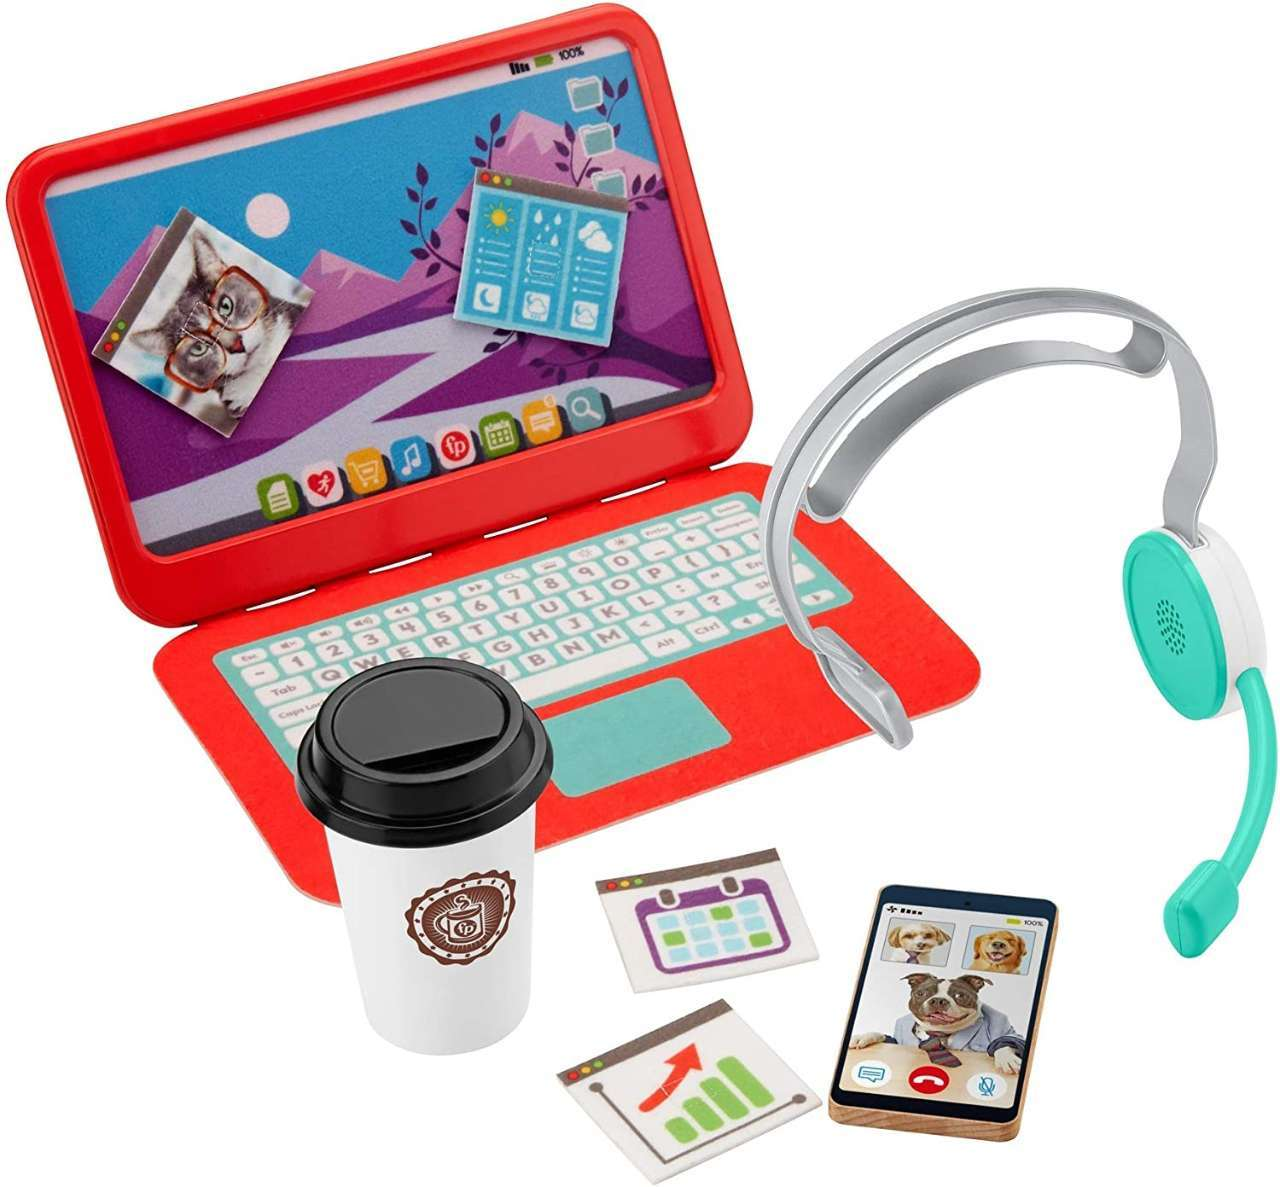 my-home-office-fisher-price71zQhR8D2XL._AC_SL1500_